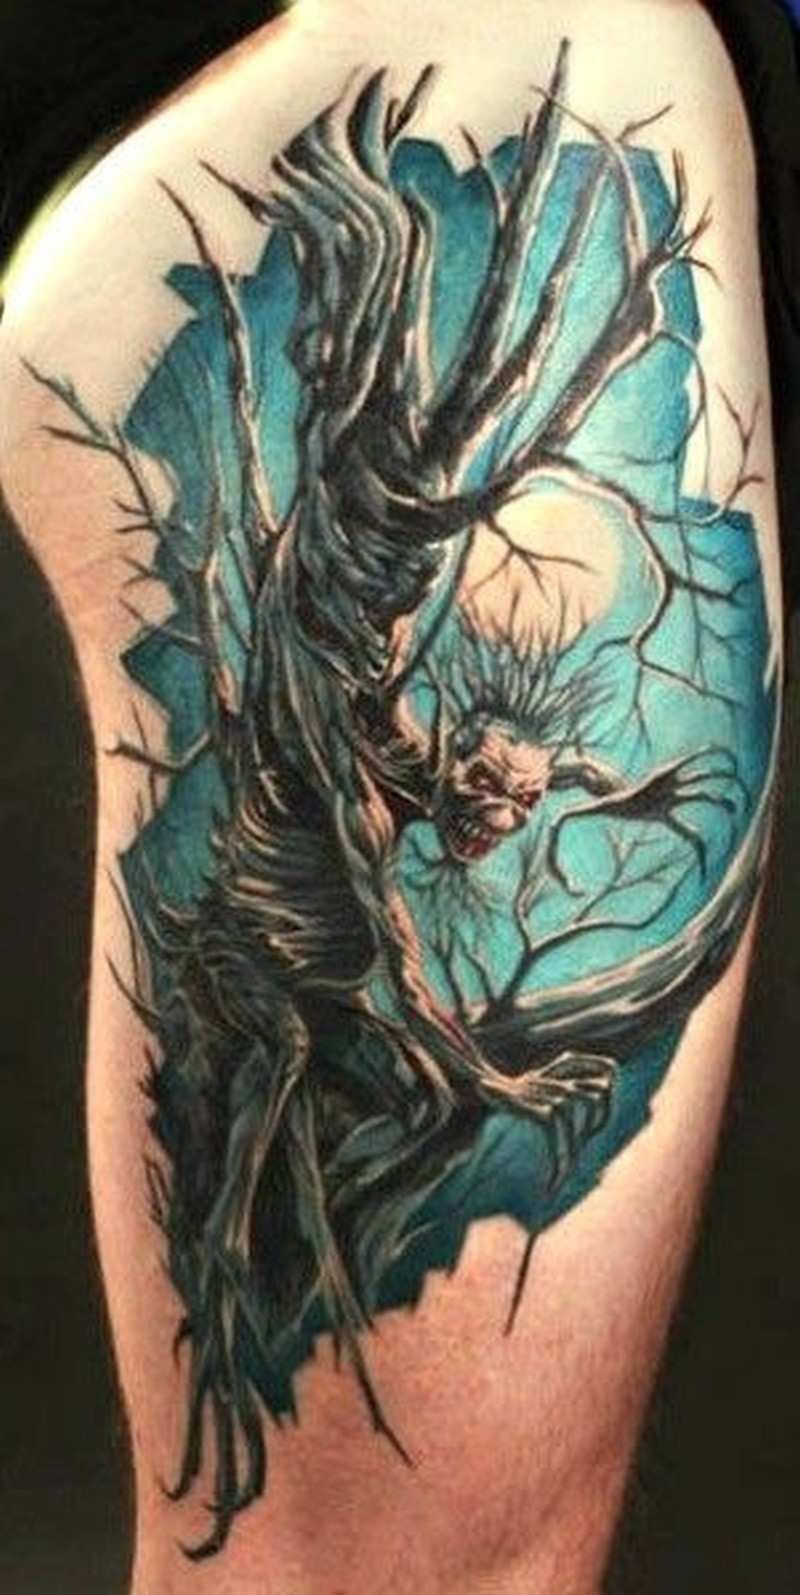 Demon tree in a full moon tattoo on half sleeve tattoos for Demon half sleeve tattoos